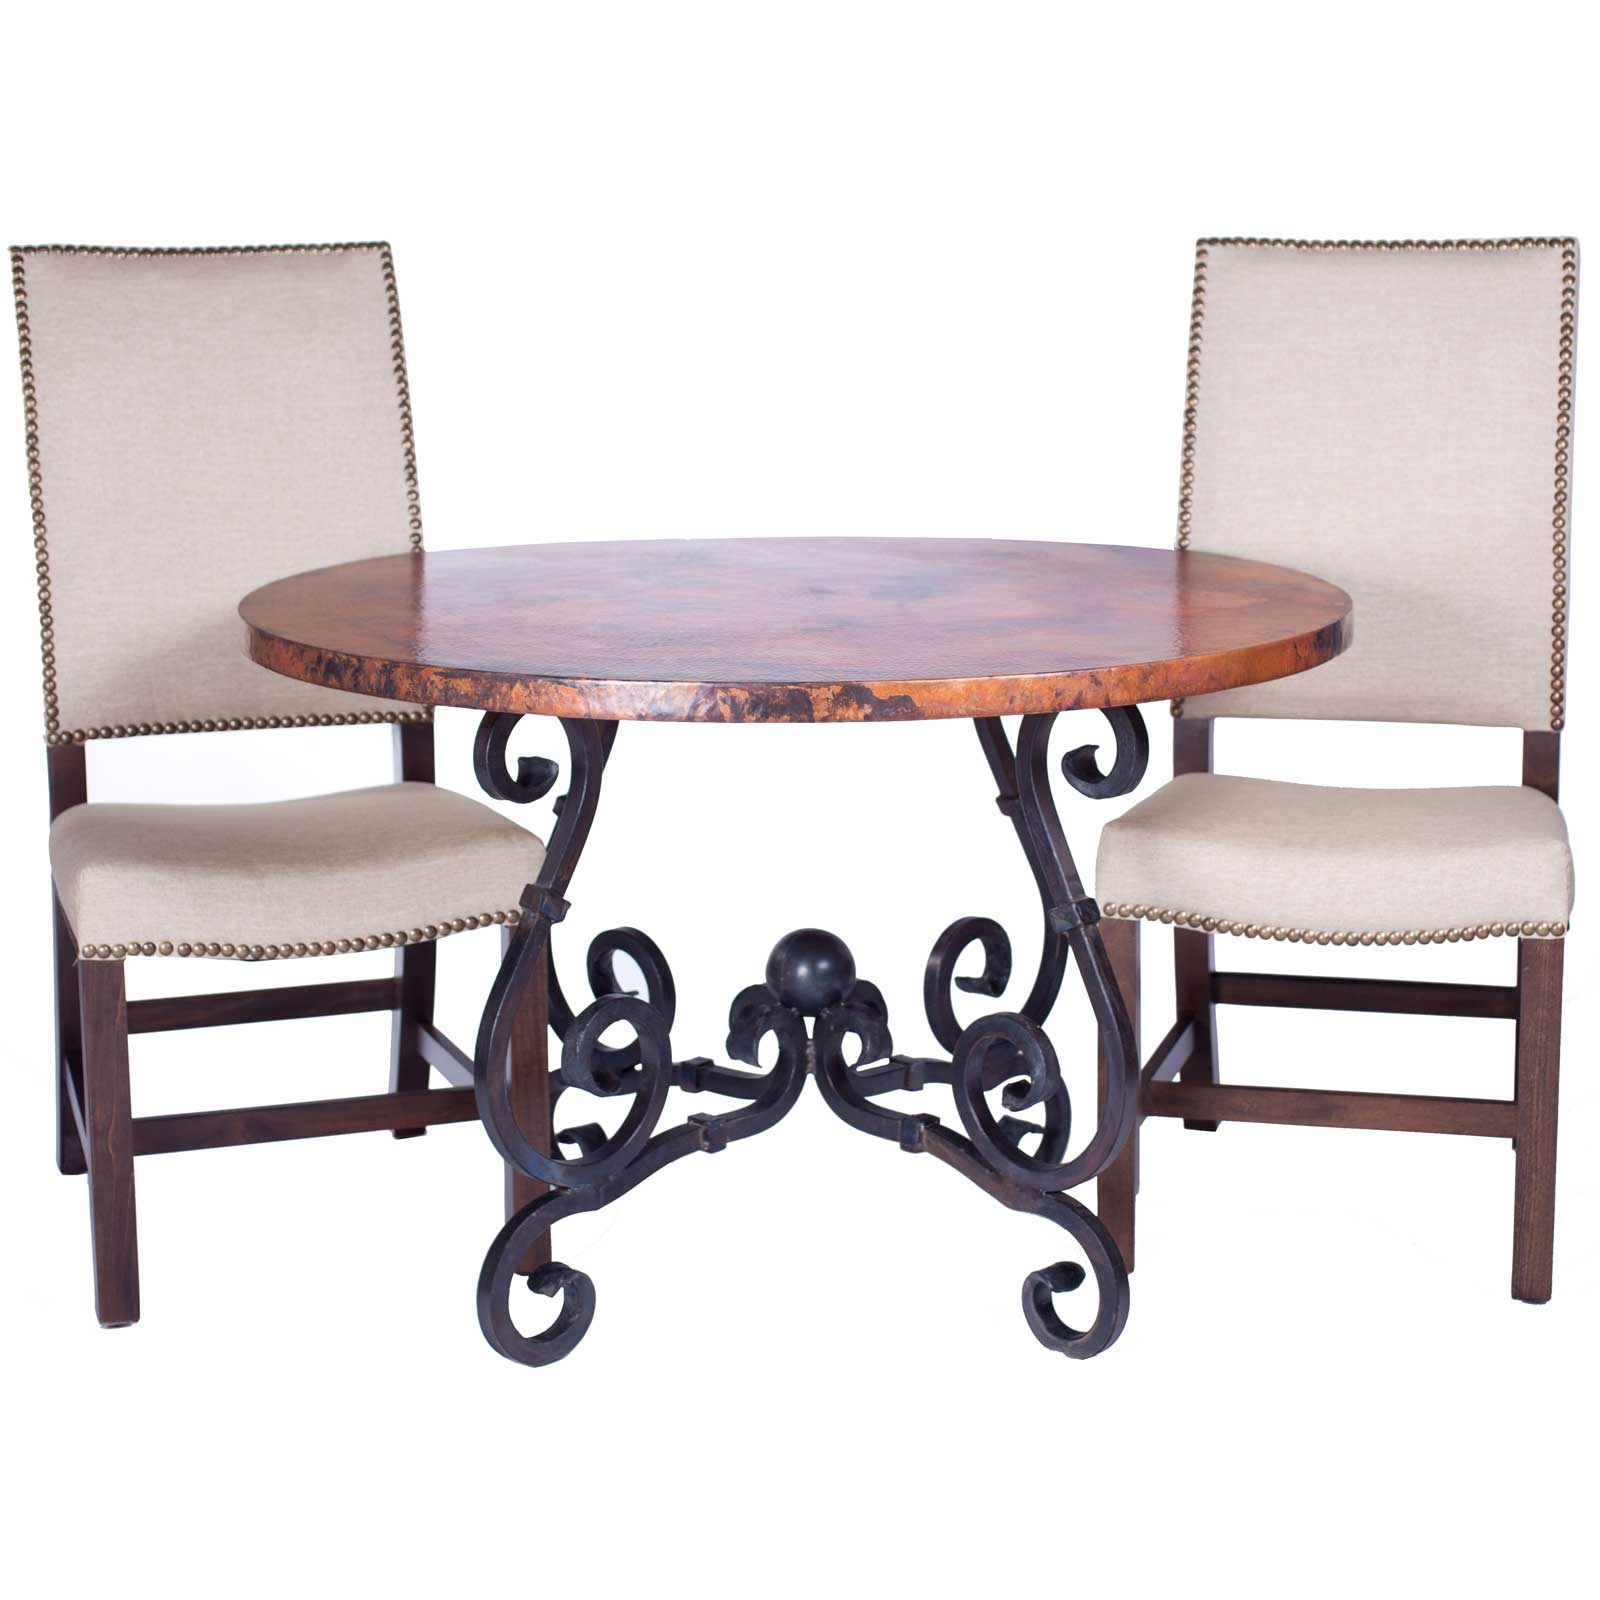 French Iron Dining Table with 72-in. Round Hammered Copper Top